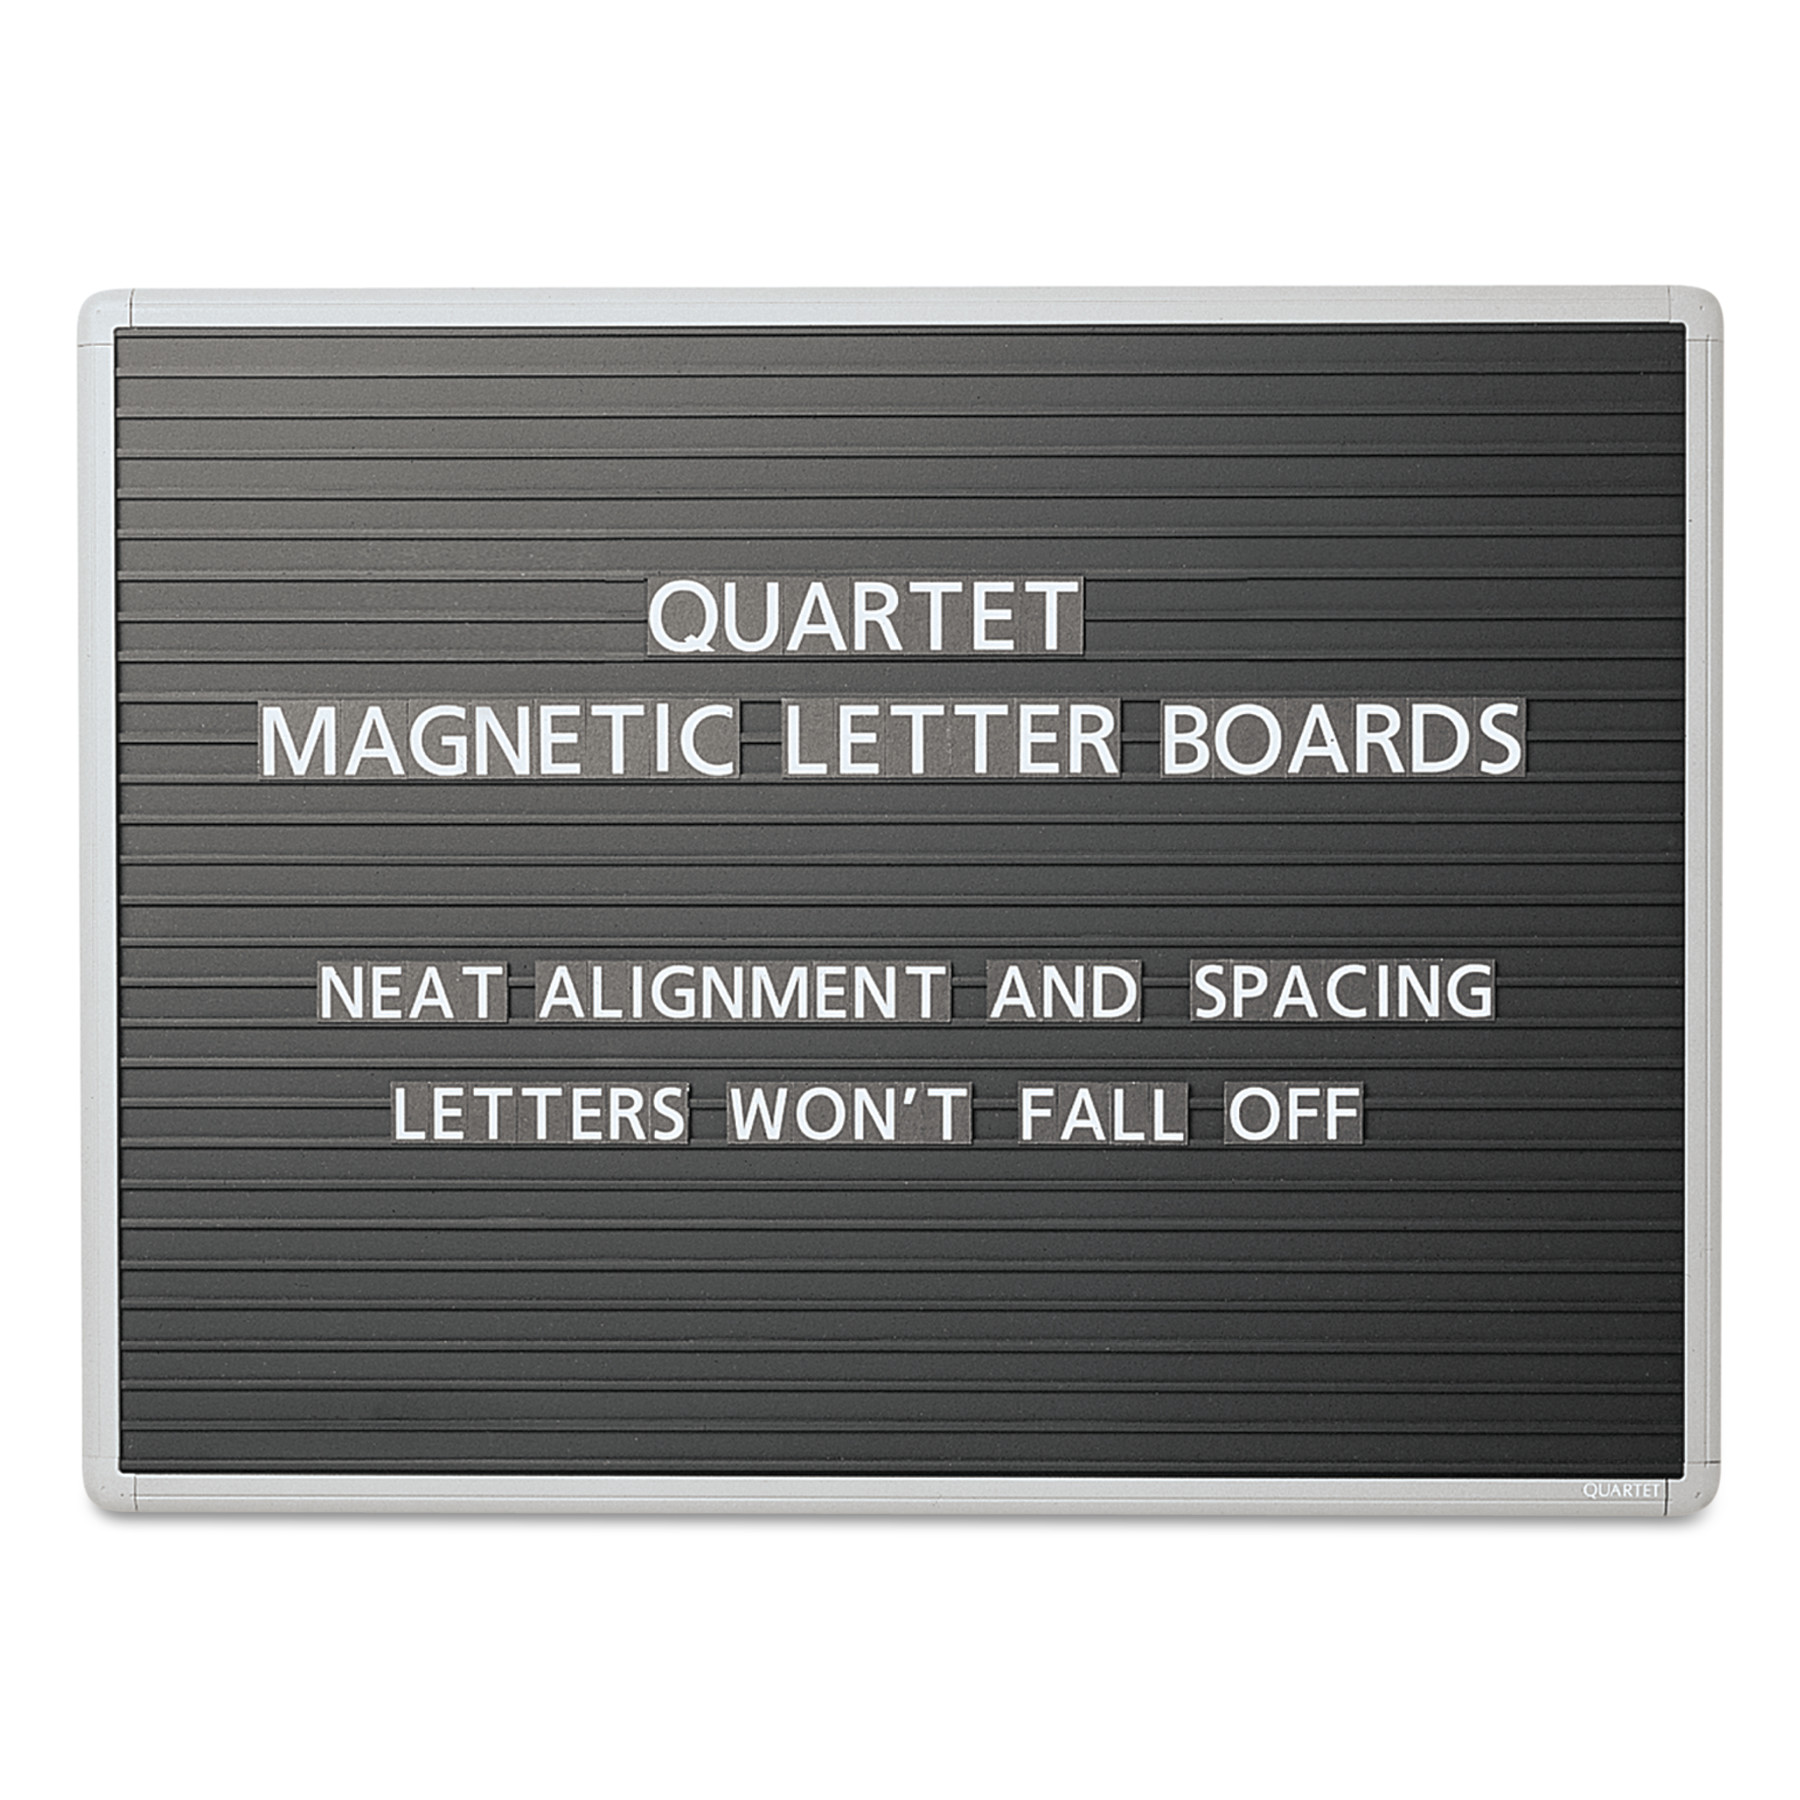 Quartet Magnetic Wall Mount Letter Board, 36 x 24, Black, Gray Aluminum Frame -QRT903M